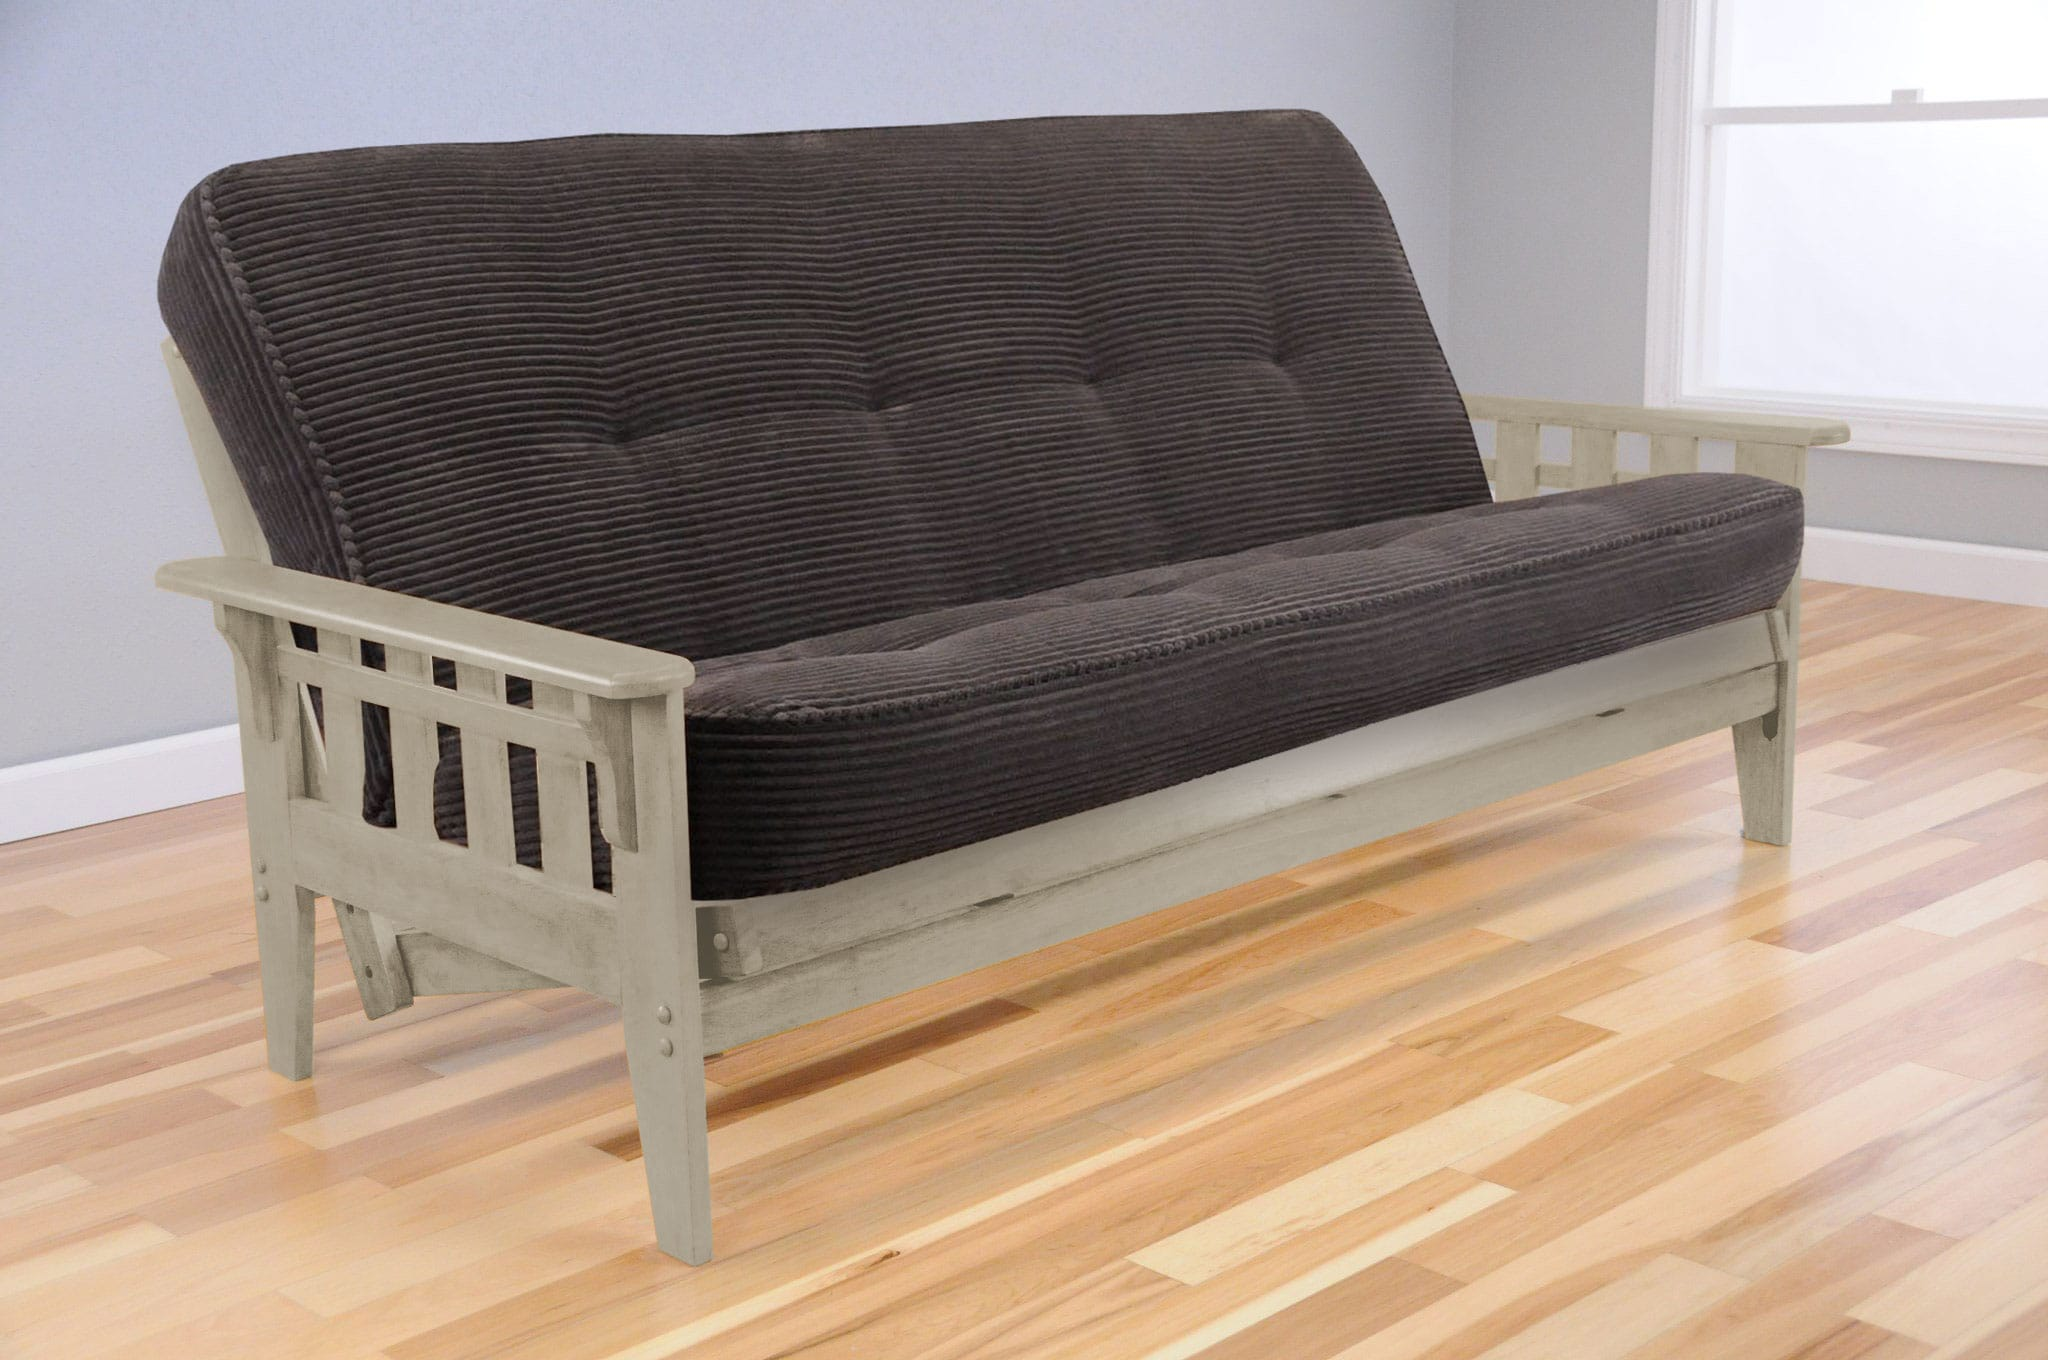 Premium Juno Full Size Light Gray Futon